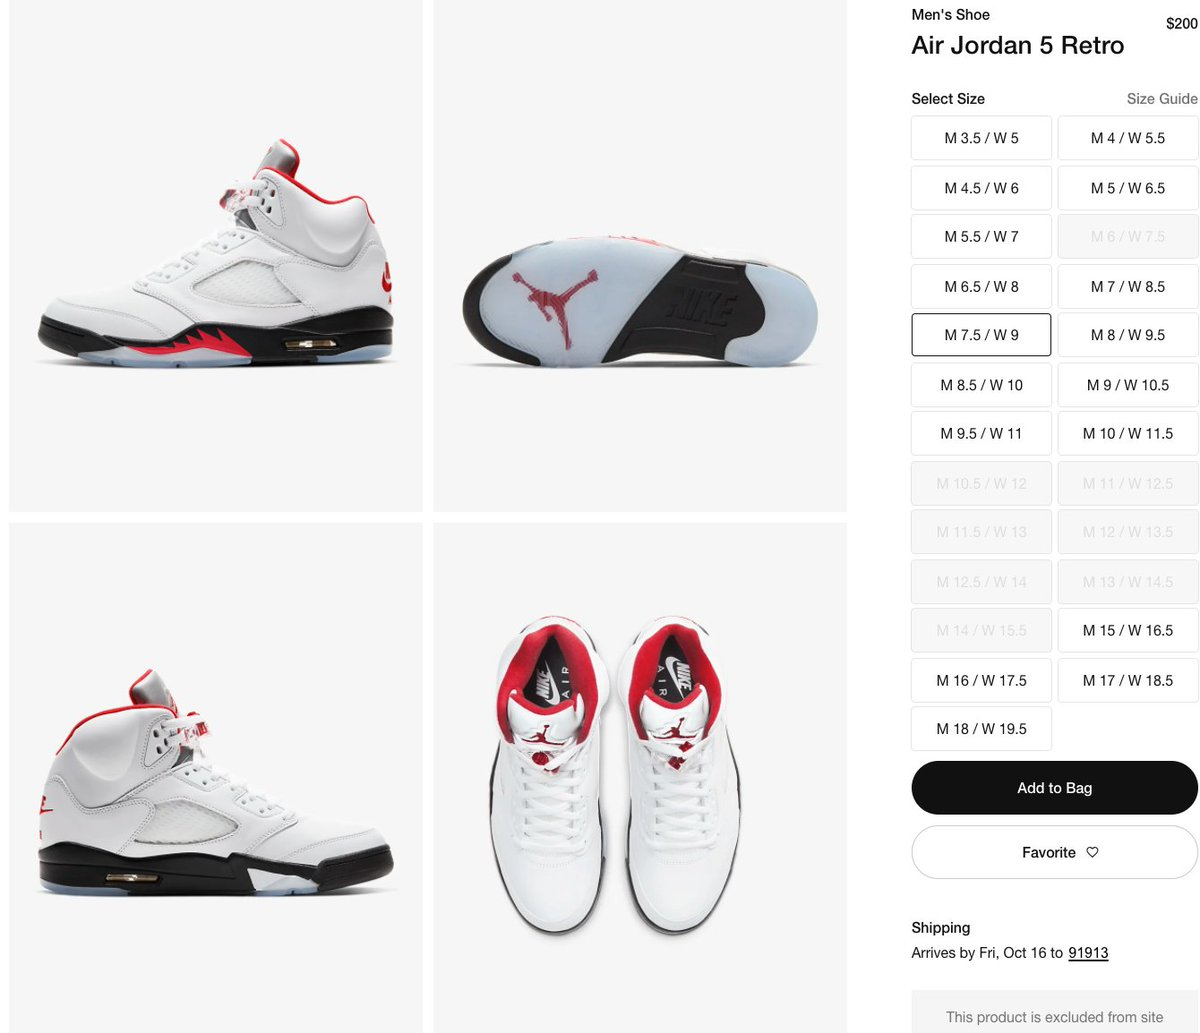 Solelinks On Twitter Ad Restock Air Jordan 5 Retro Fire Red Https T Co Iutumfyibm Https T Co Iutumfyibm Also for twitter turn off retweets because eventually it becomes really spammy. ad restock air jordan 5 retro fire